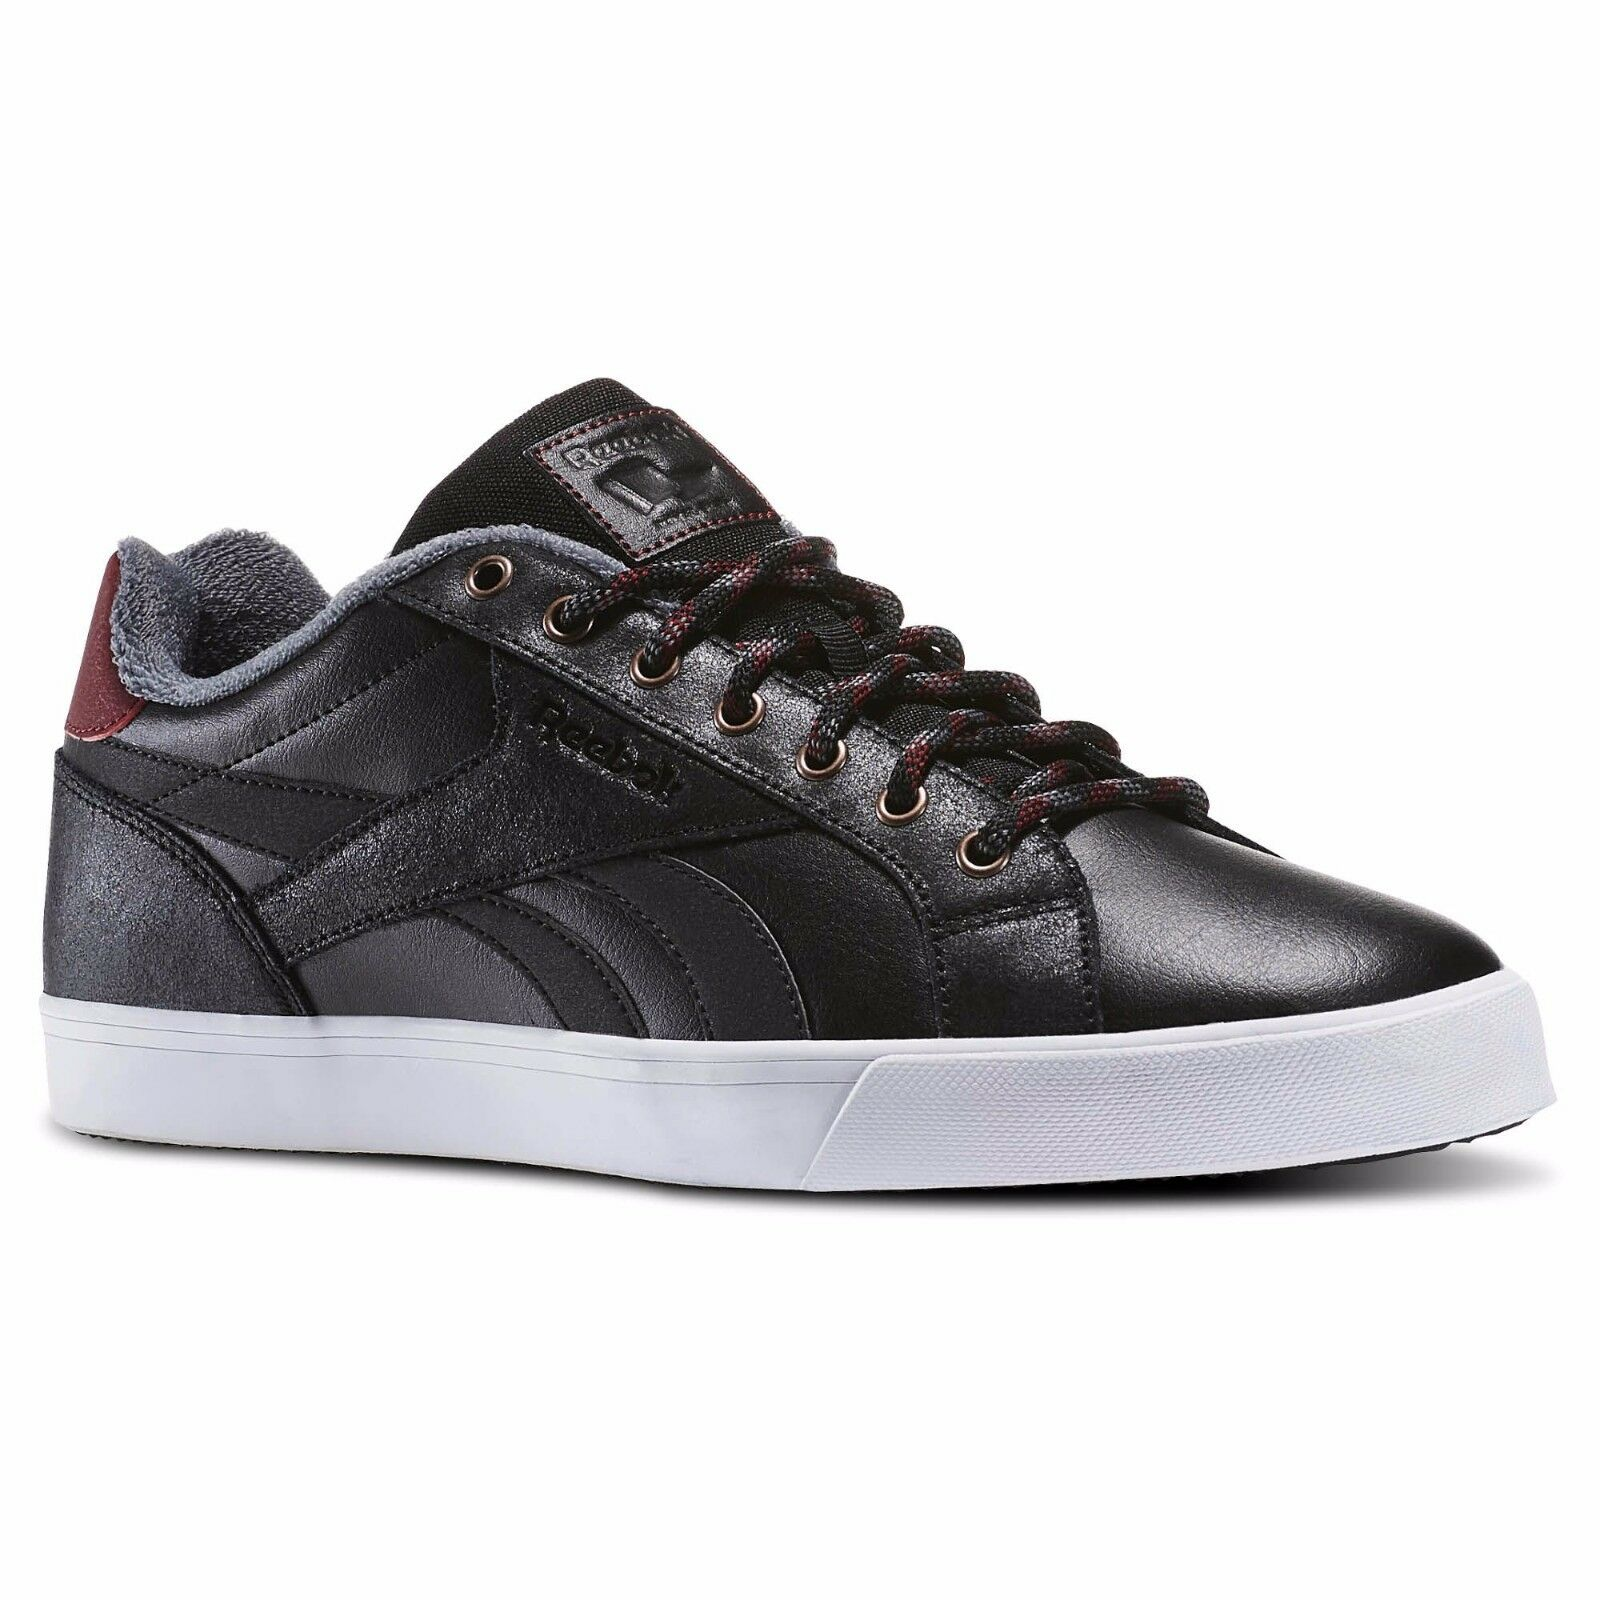 REEBOK ROYAL COMPLETE 2LW SHOE SHOES CLASSIC BLACK AR3225 (IN STORE